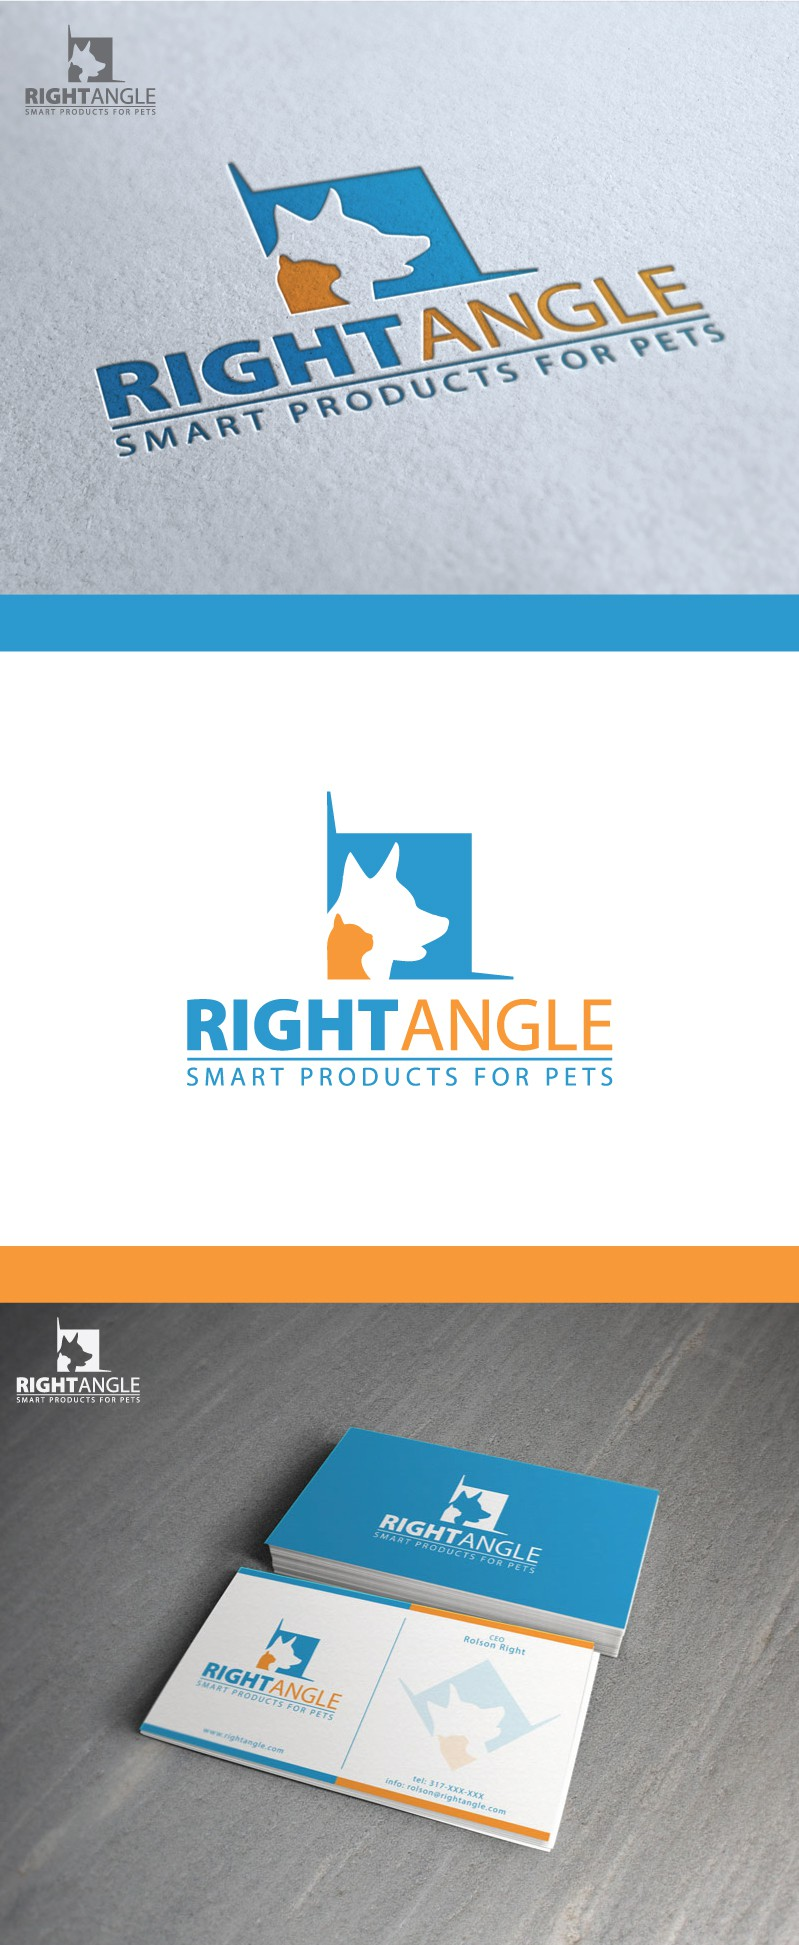 Right Angle Distribution needs a logo & business card